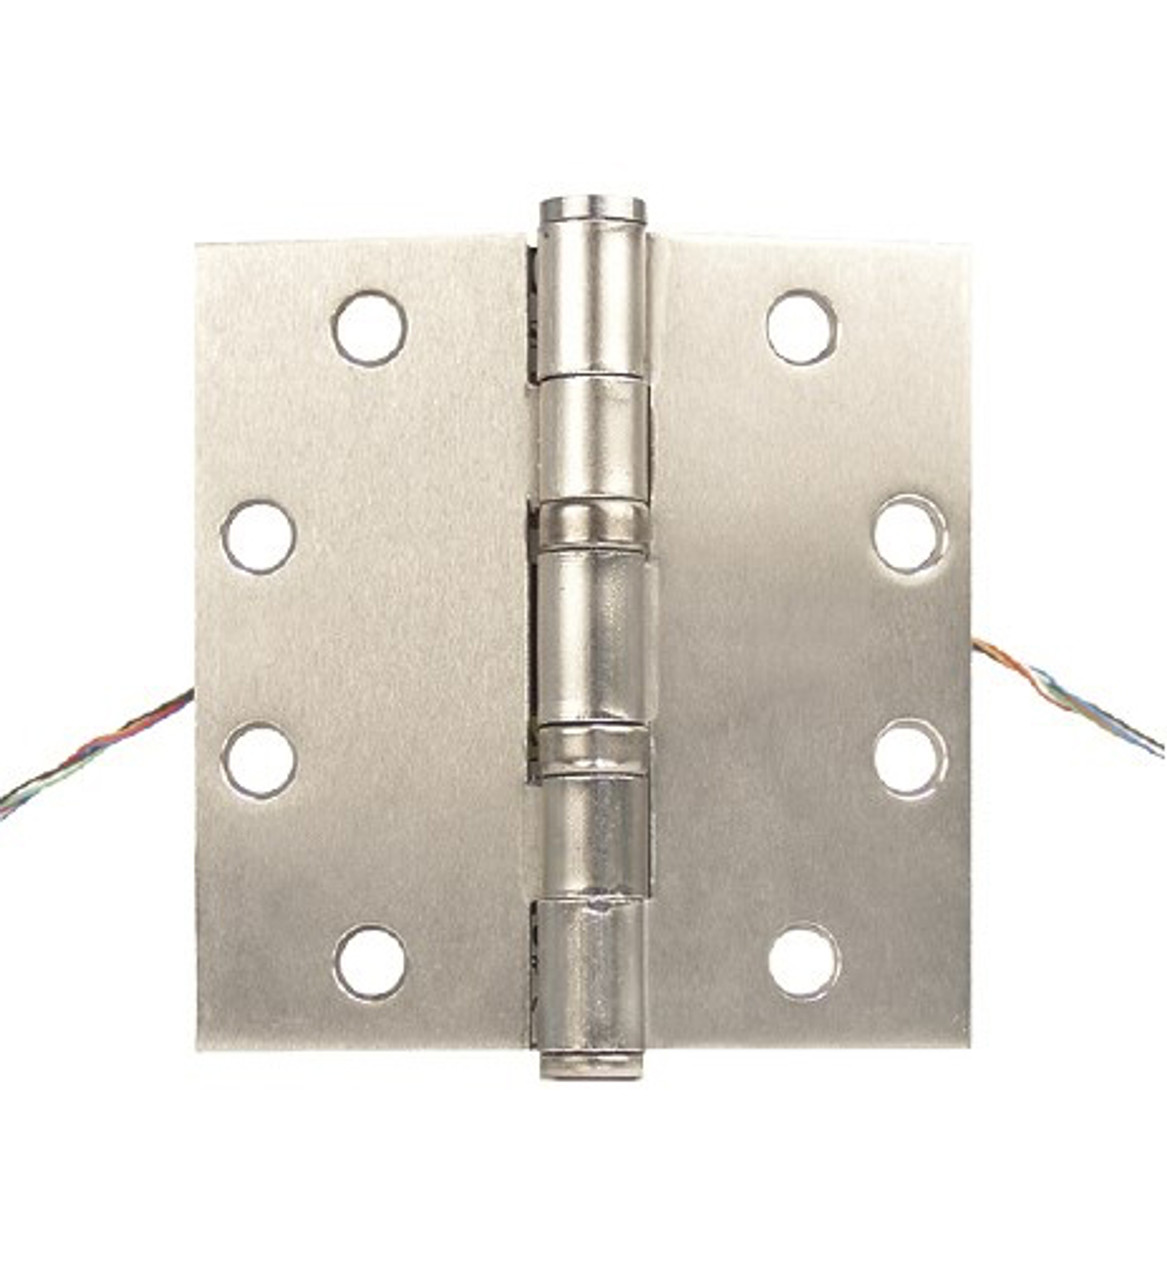 Securitron Eh 45 Power Transfer Electric Hinge